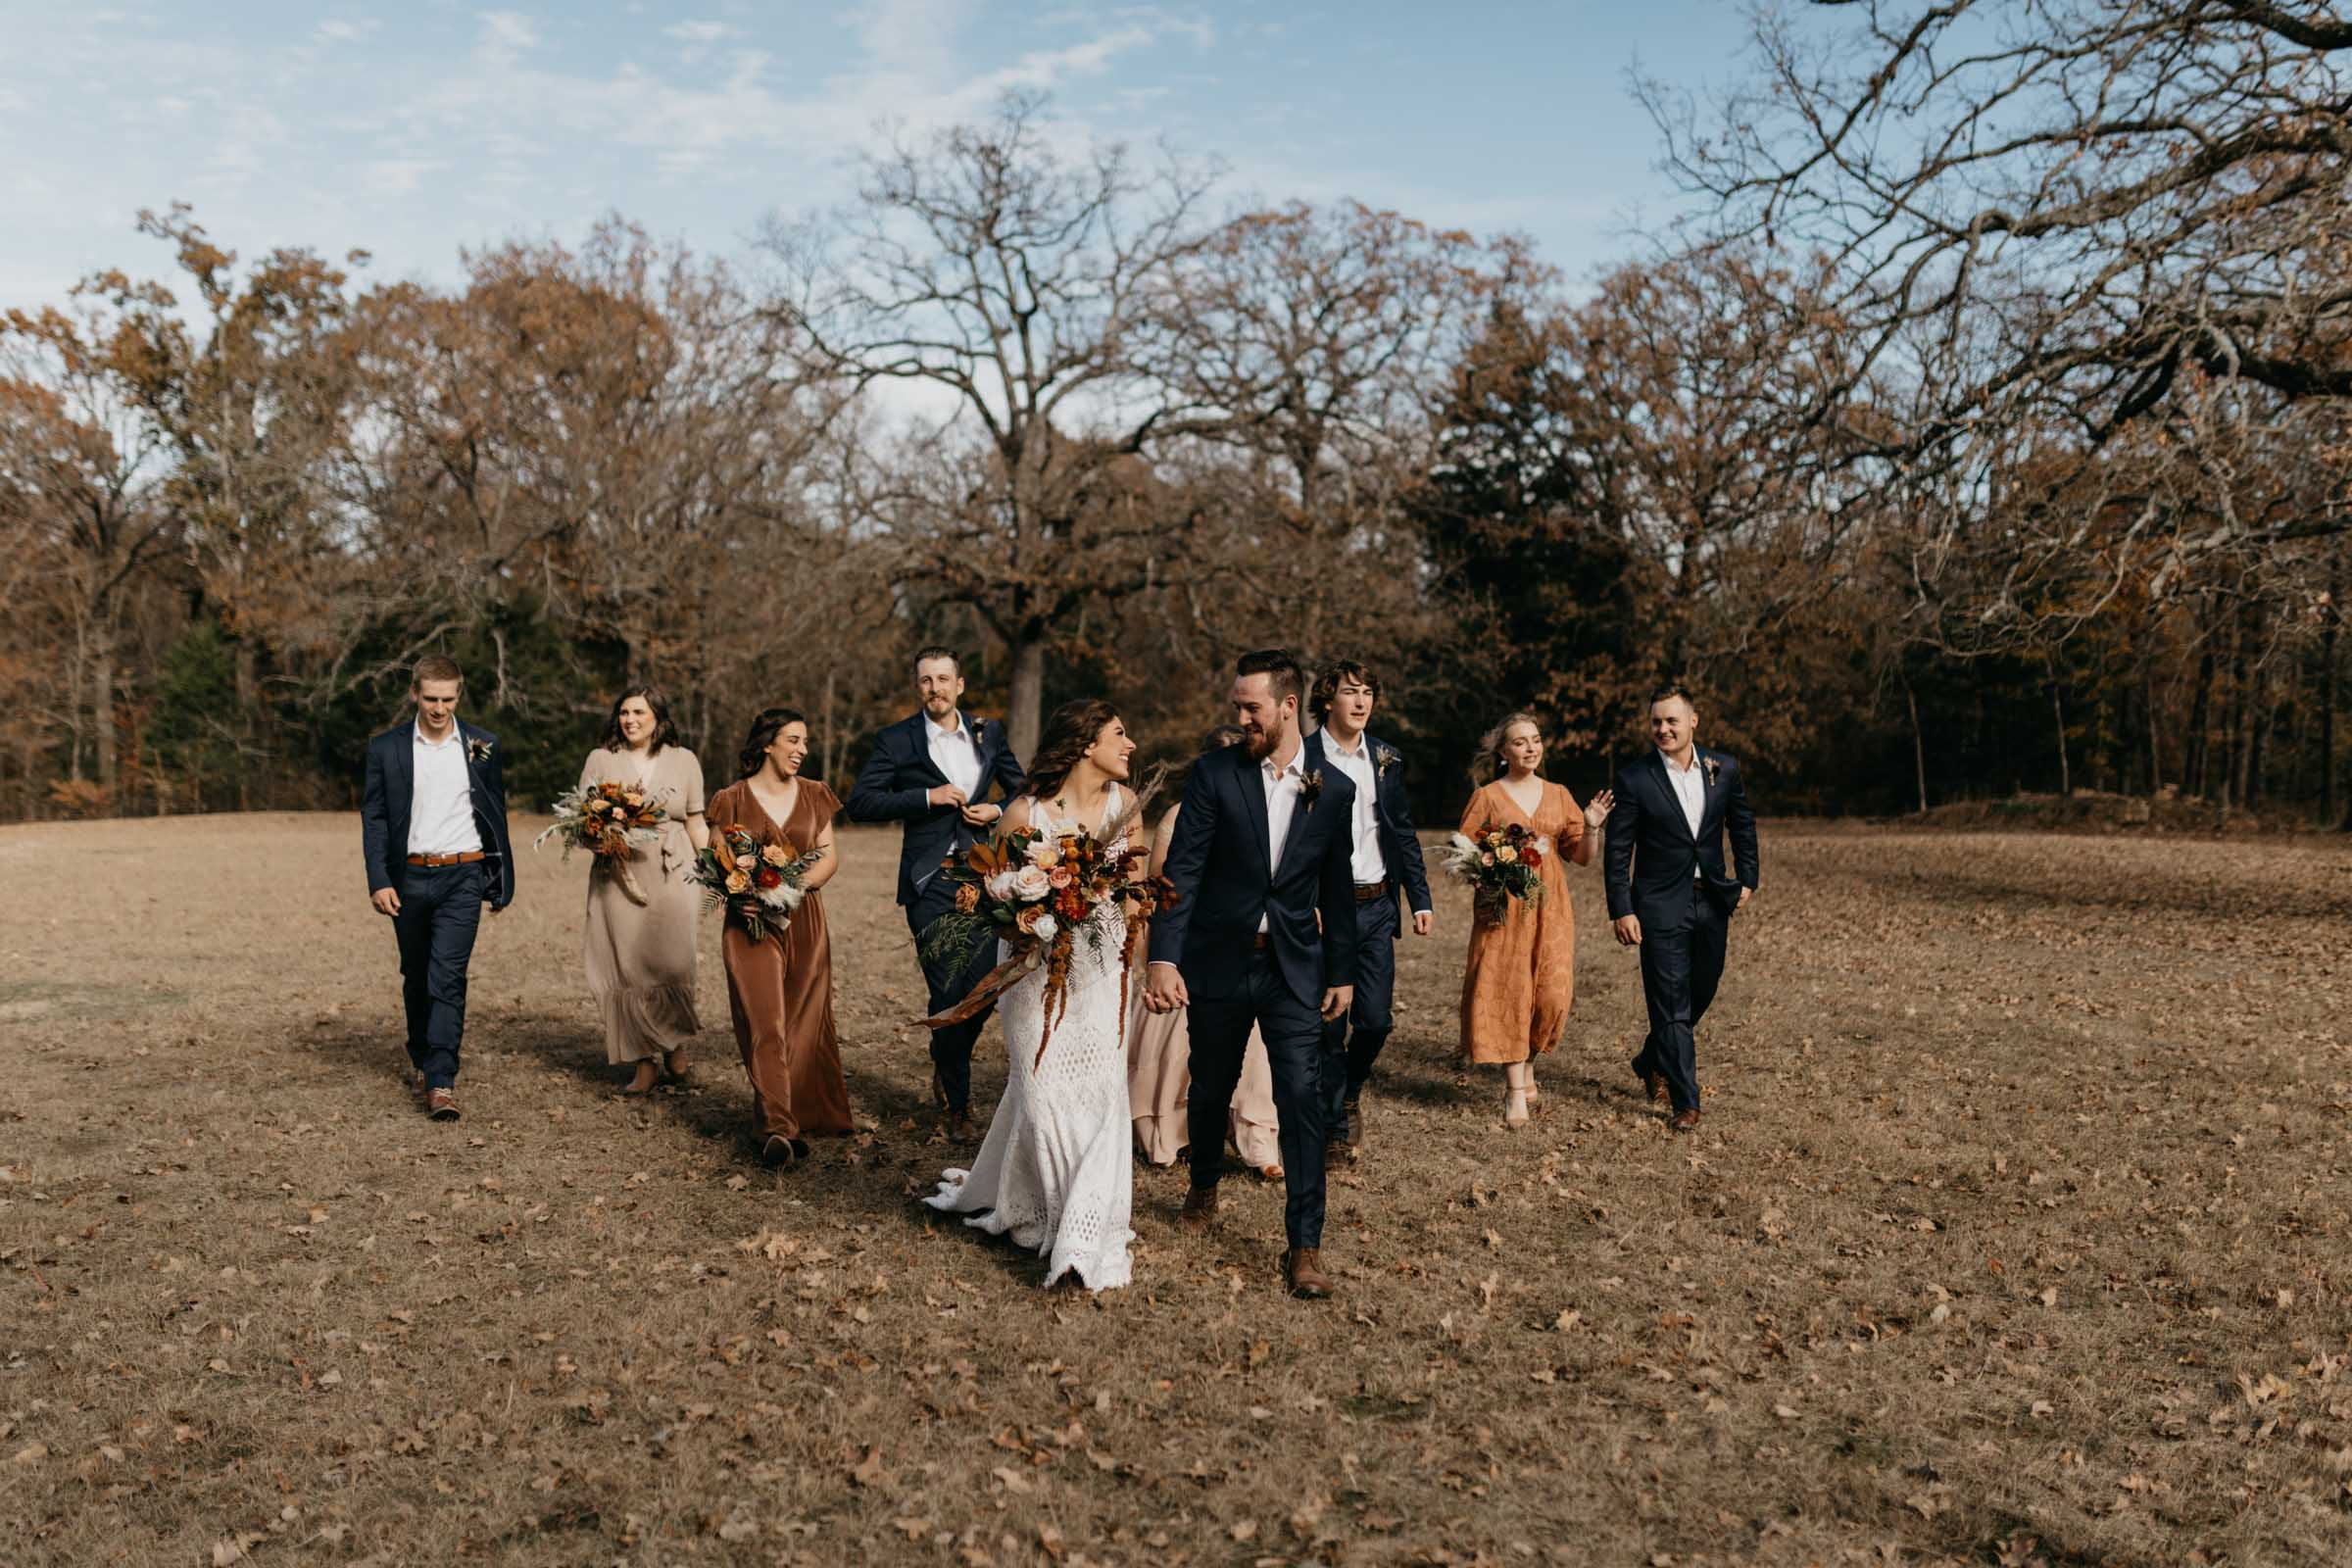 Creative way to photograph a bridal party without looking too posed